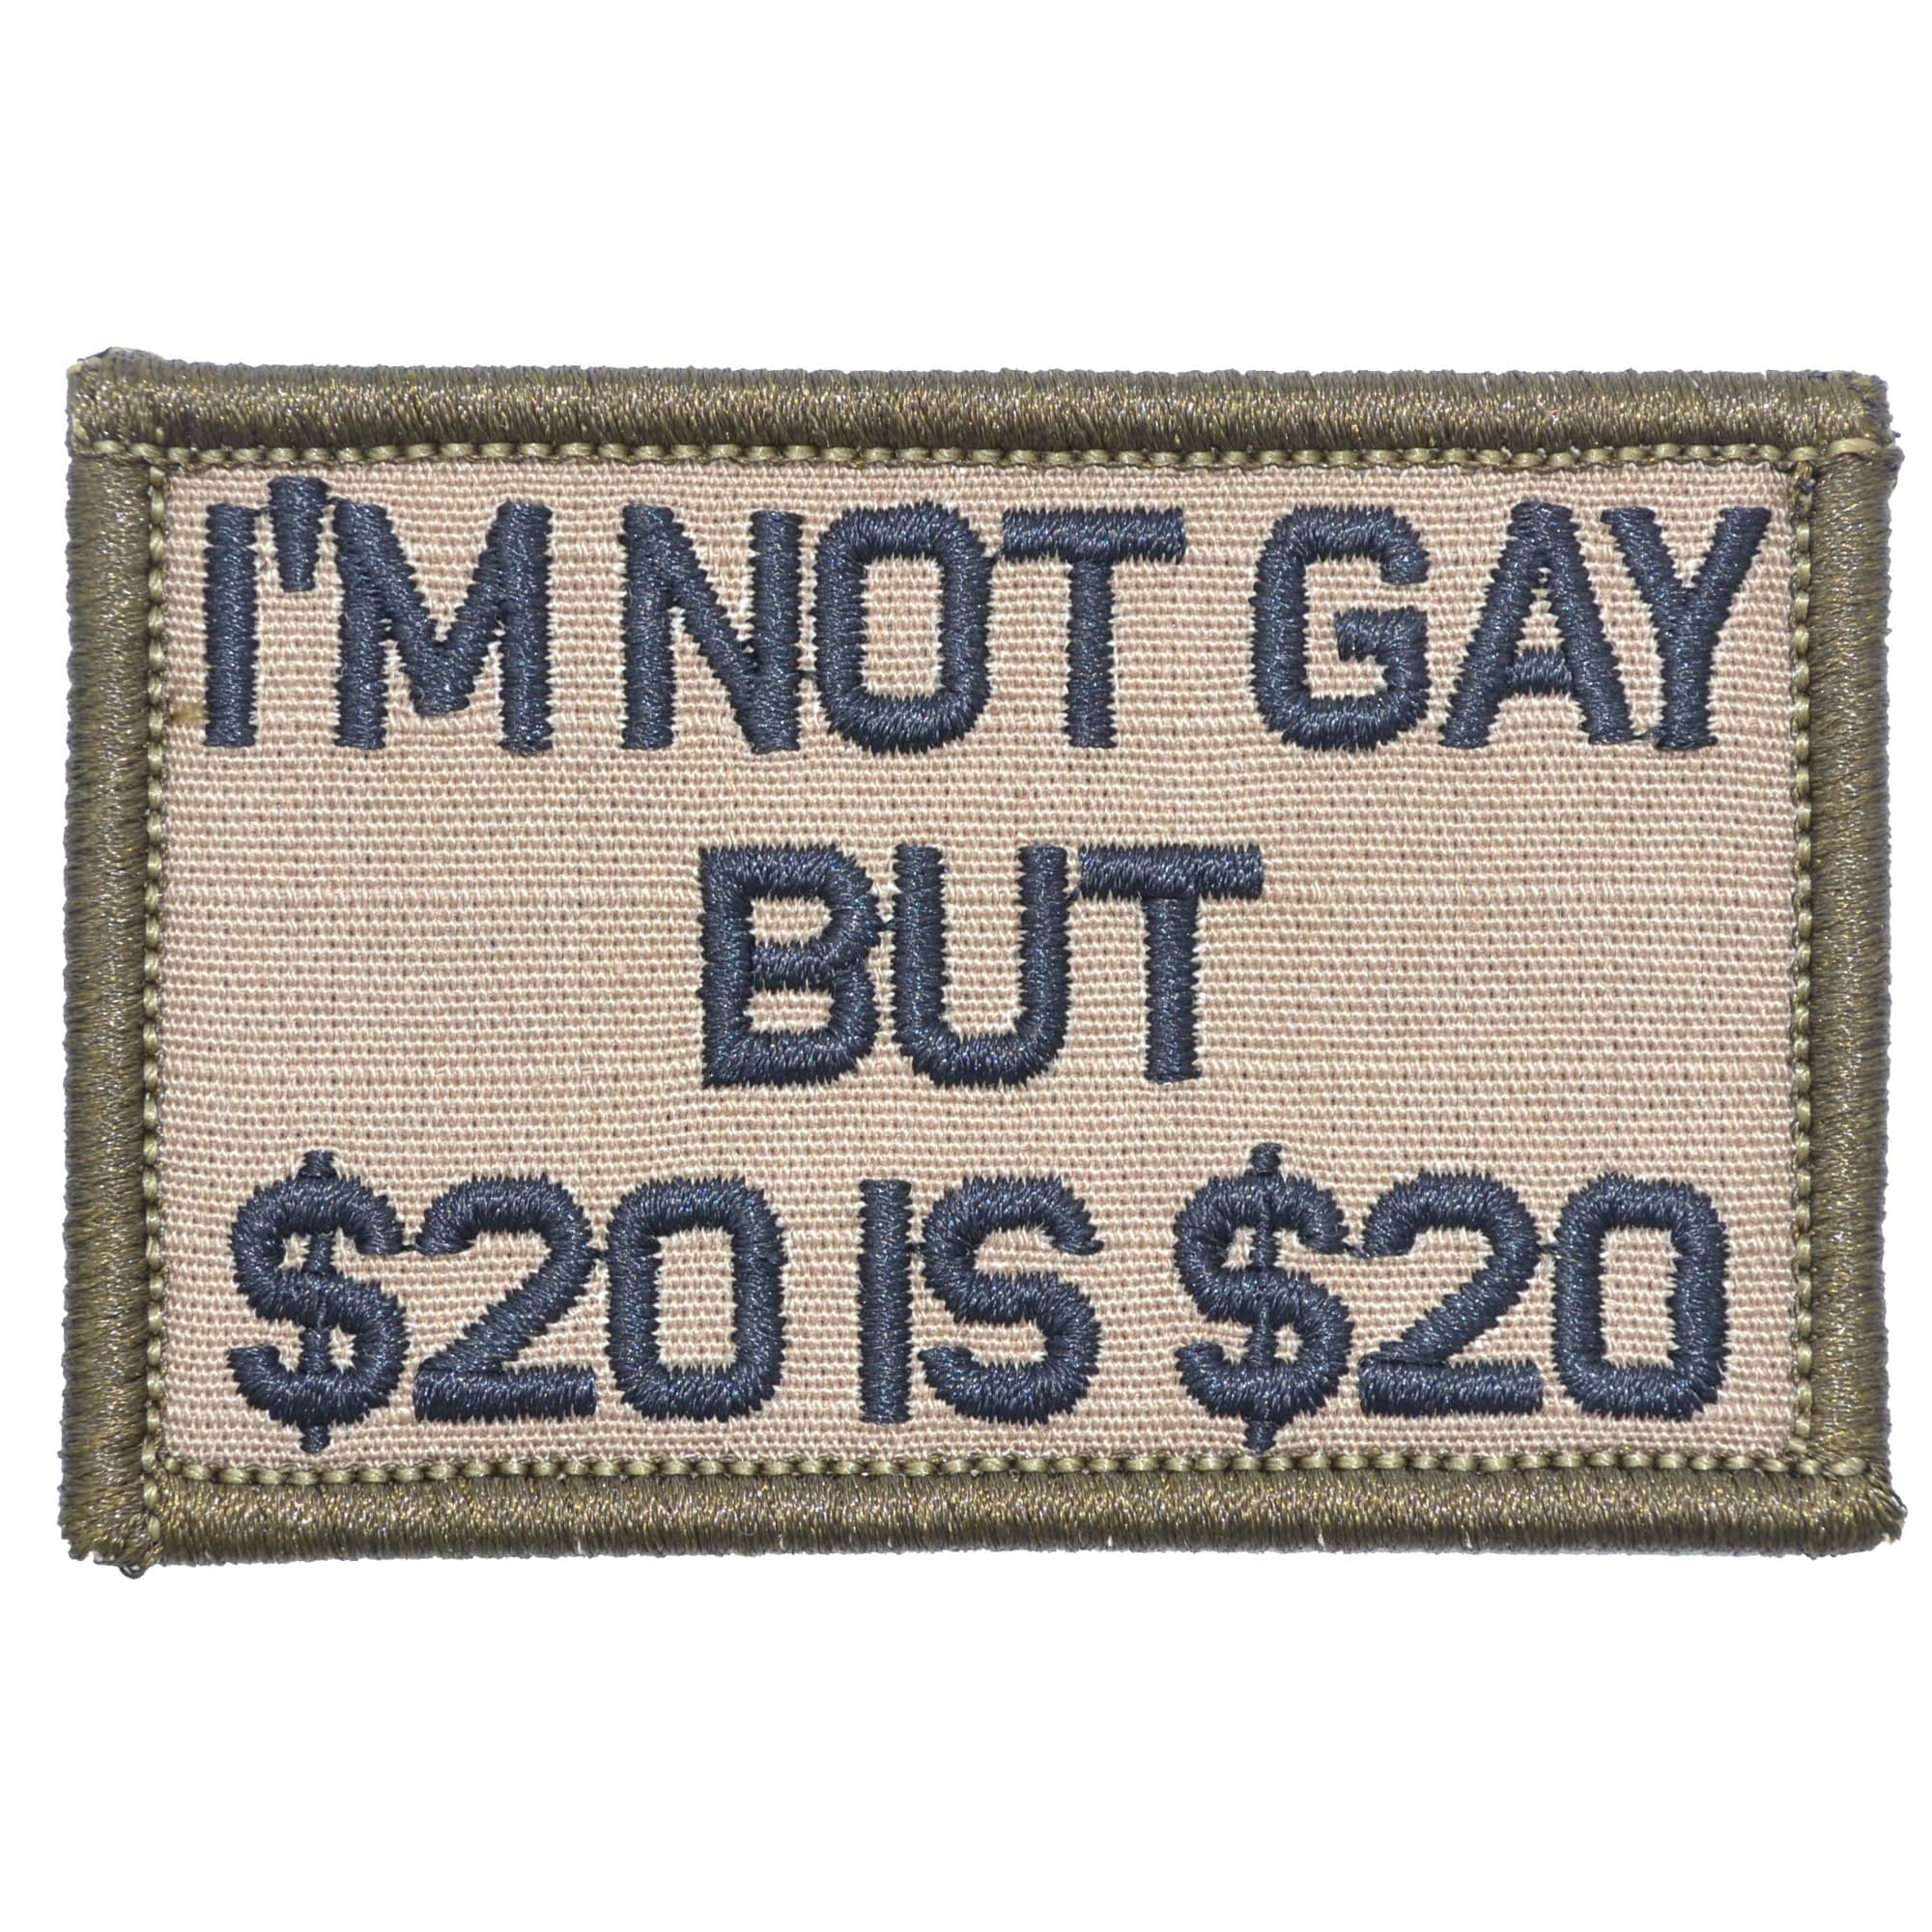 Tactical Gear Junkie Patches Coyote Brown w/ Black I'm Not Gay But $20 is $20 - 2x3 Patch